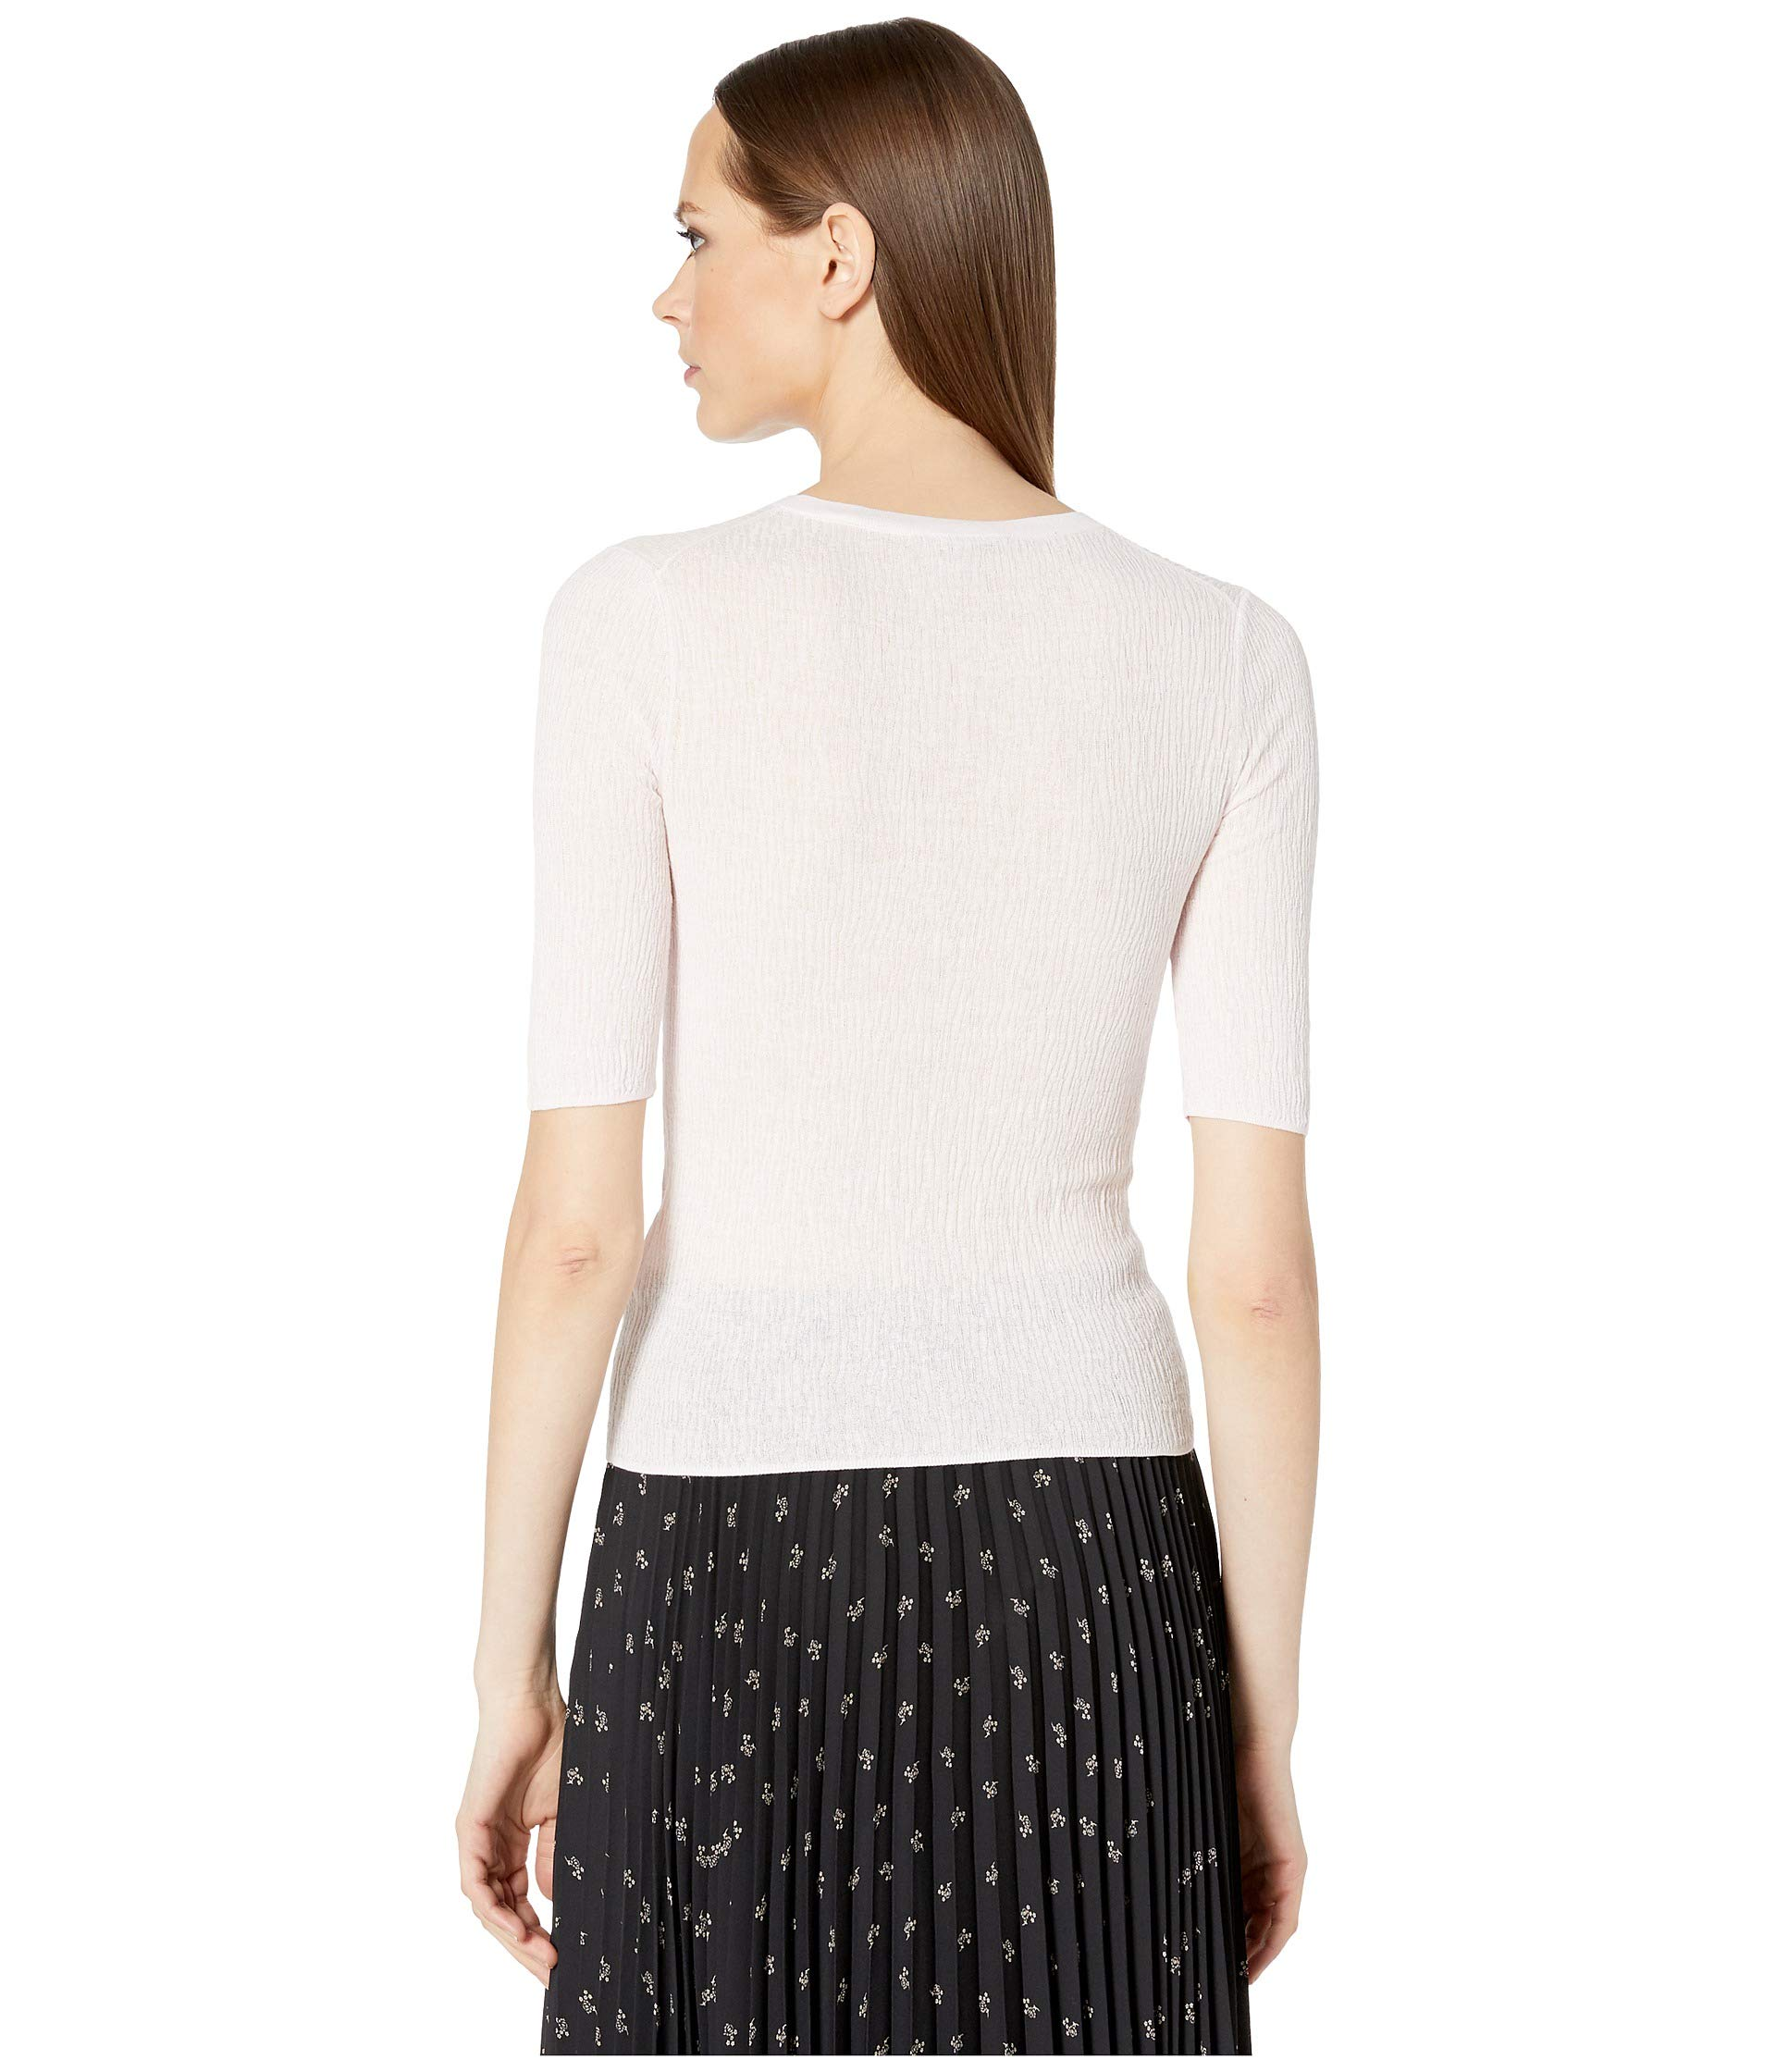 490fcd2e3 Vince Broomstick Pleat Elbow Sleeve at Luxury.Zappos.com